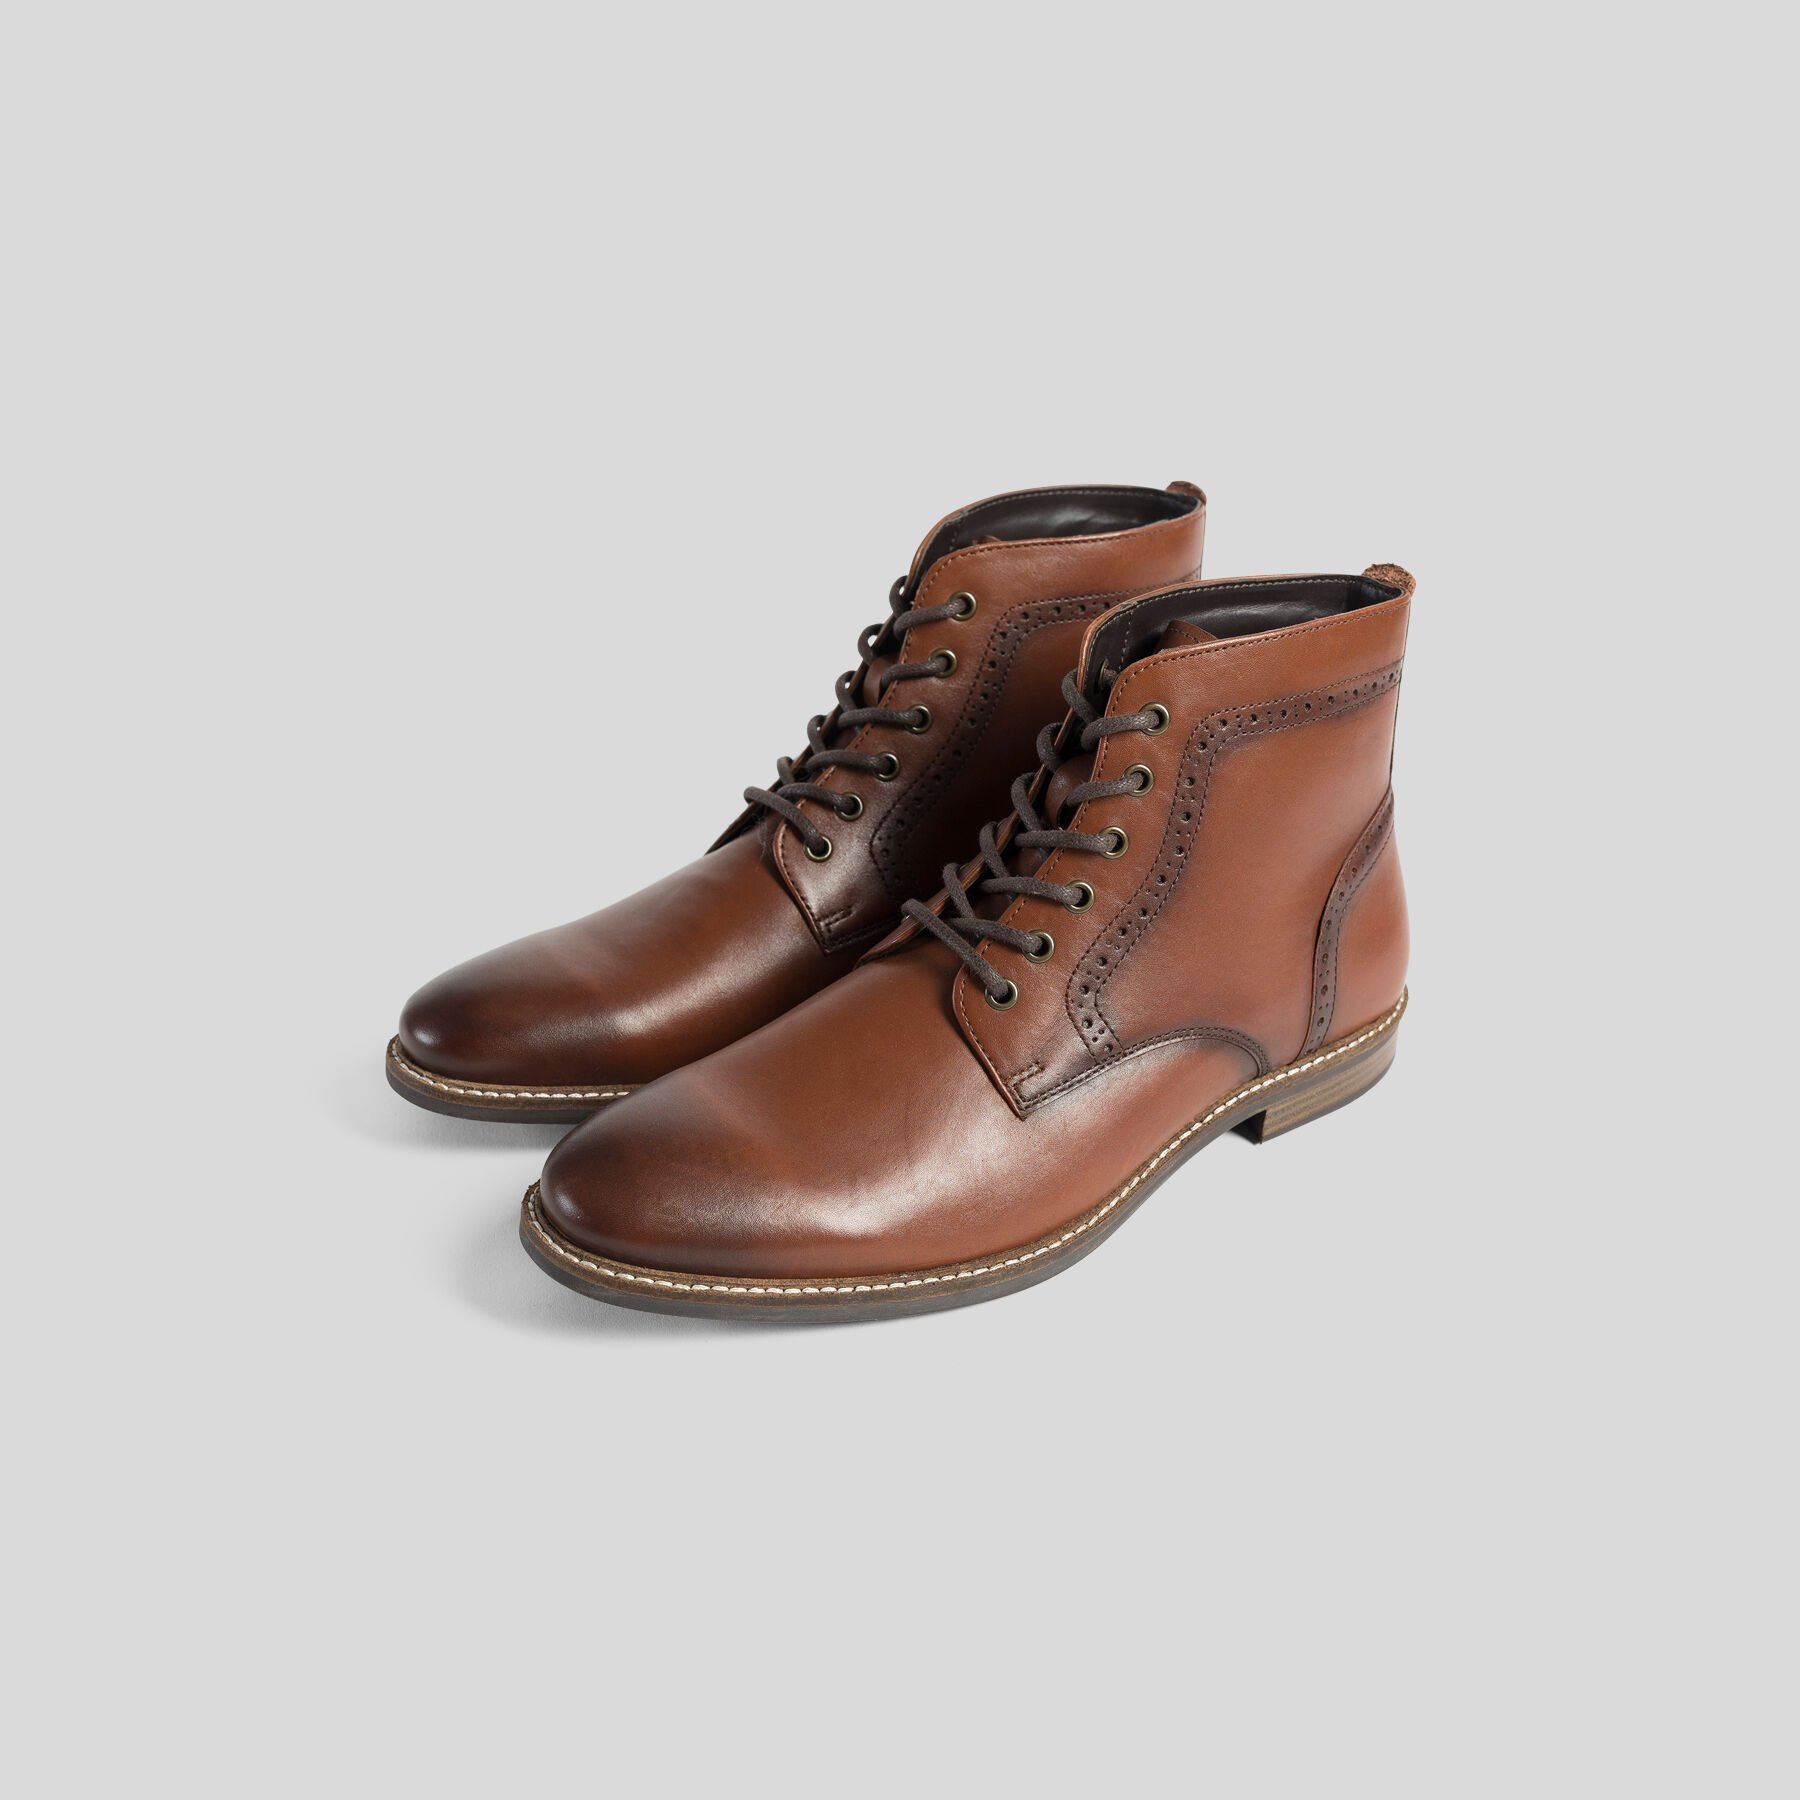 Boots Chaussures Cuir Homme Chaussure Homme Jules Y75qPP